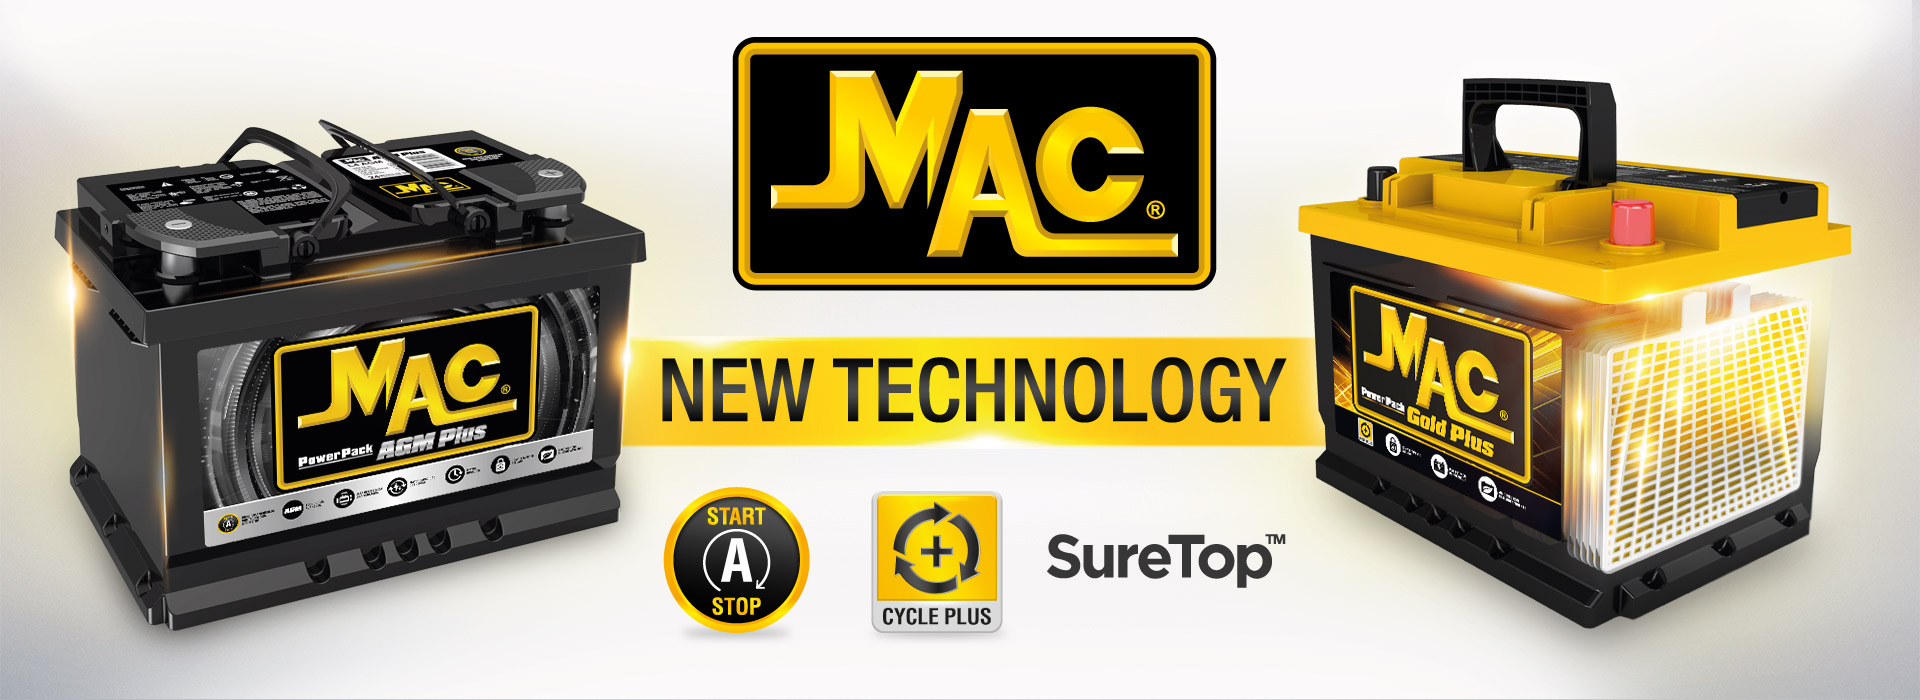 New Technology - Mac AGM Plus and Gold Plus batteries